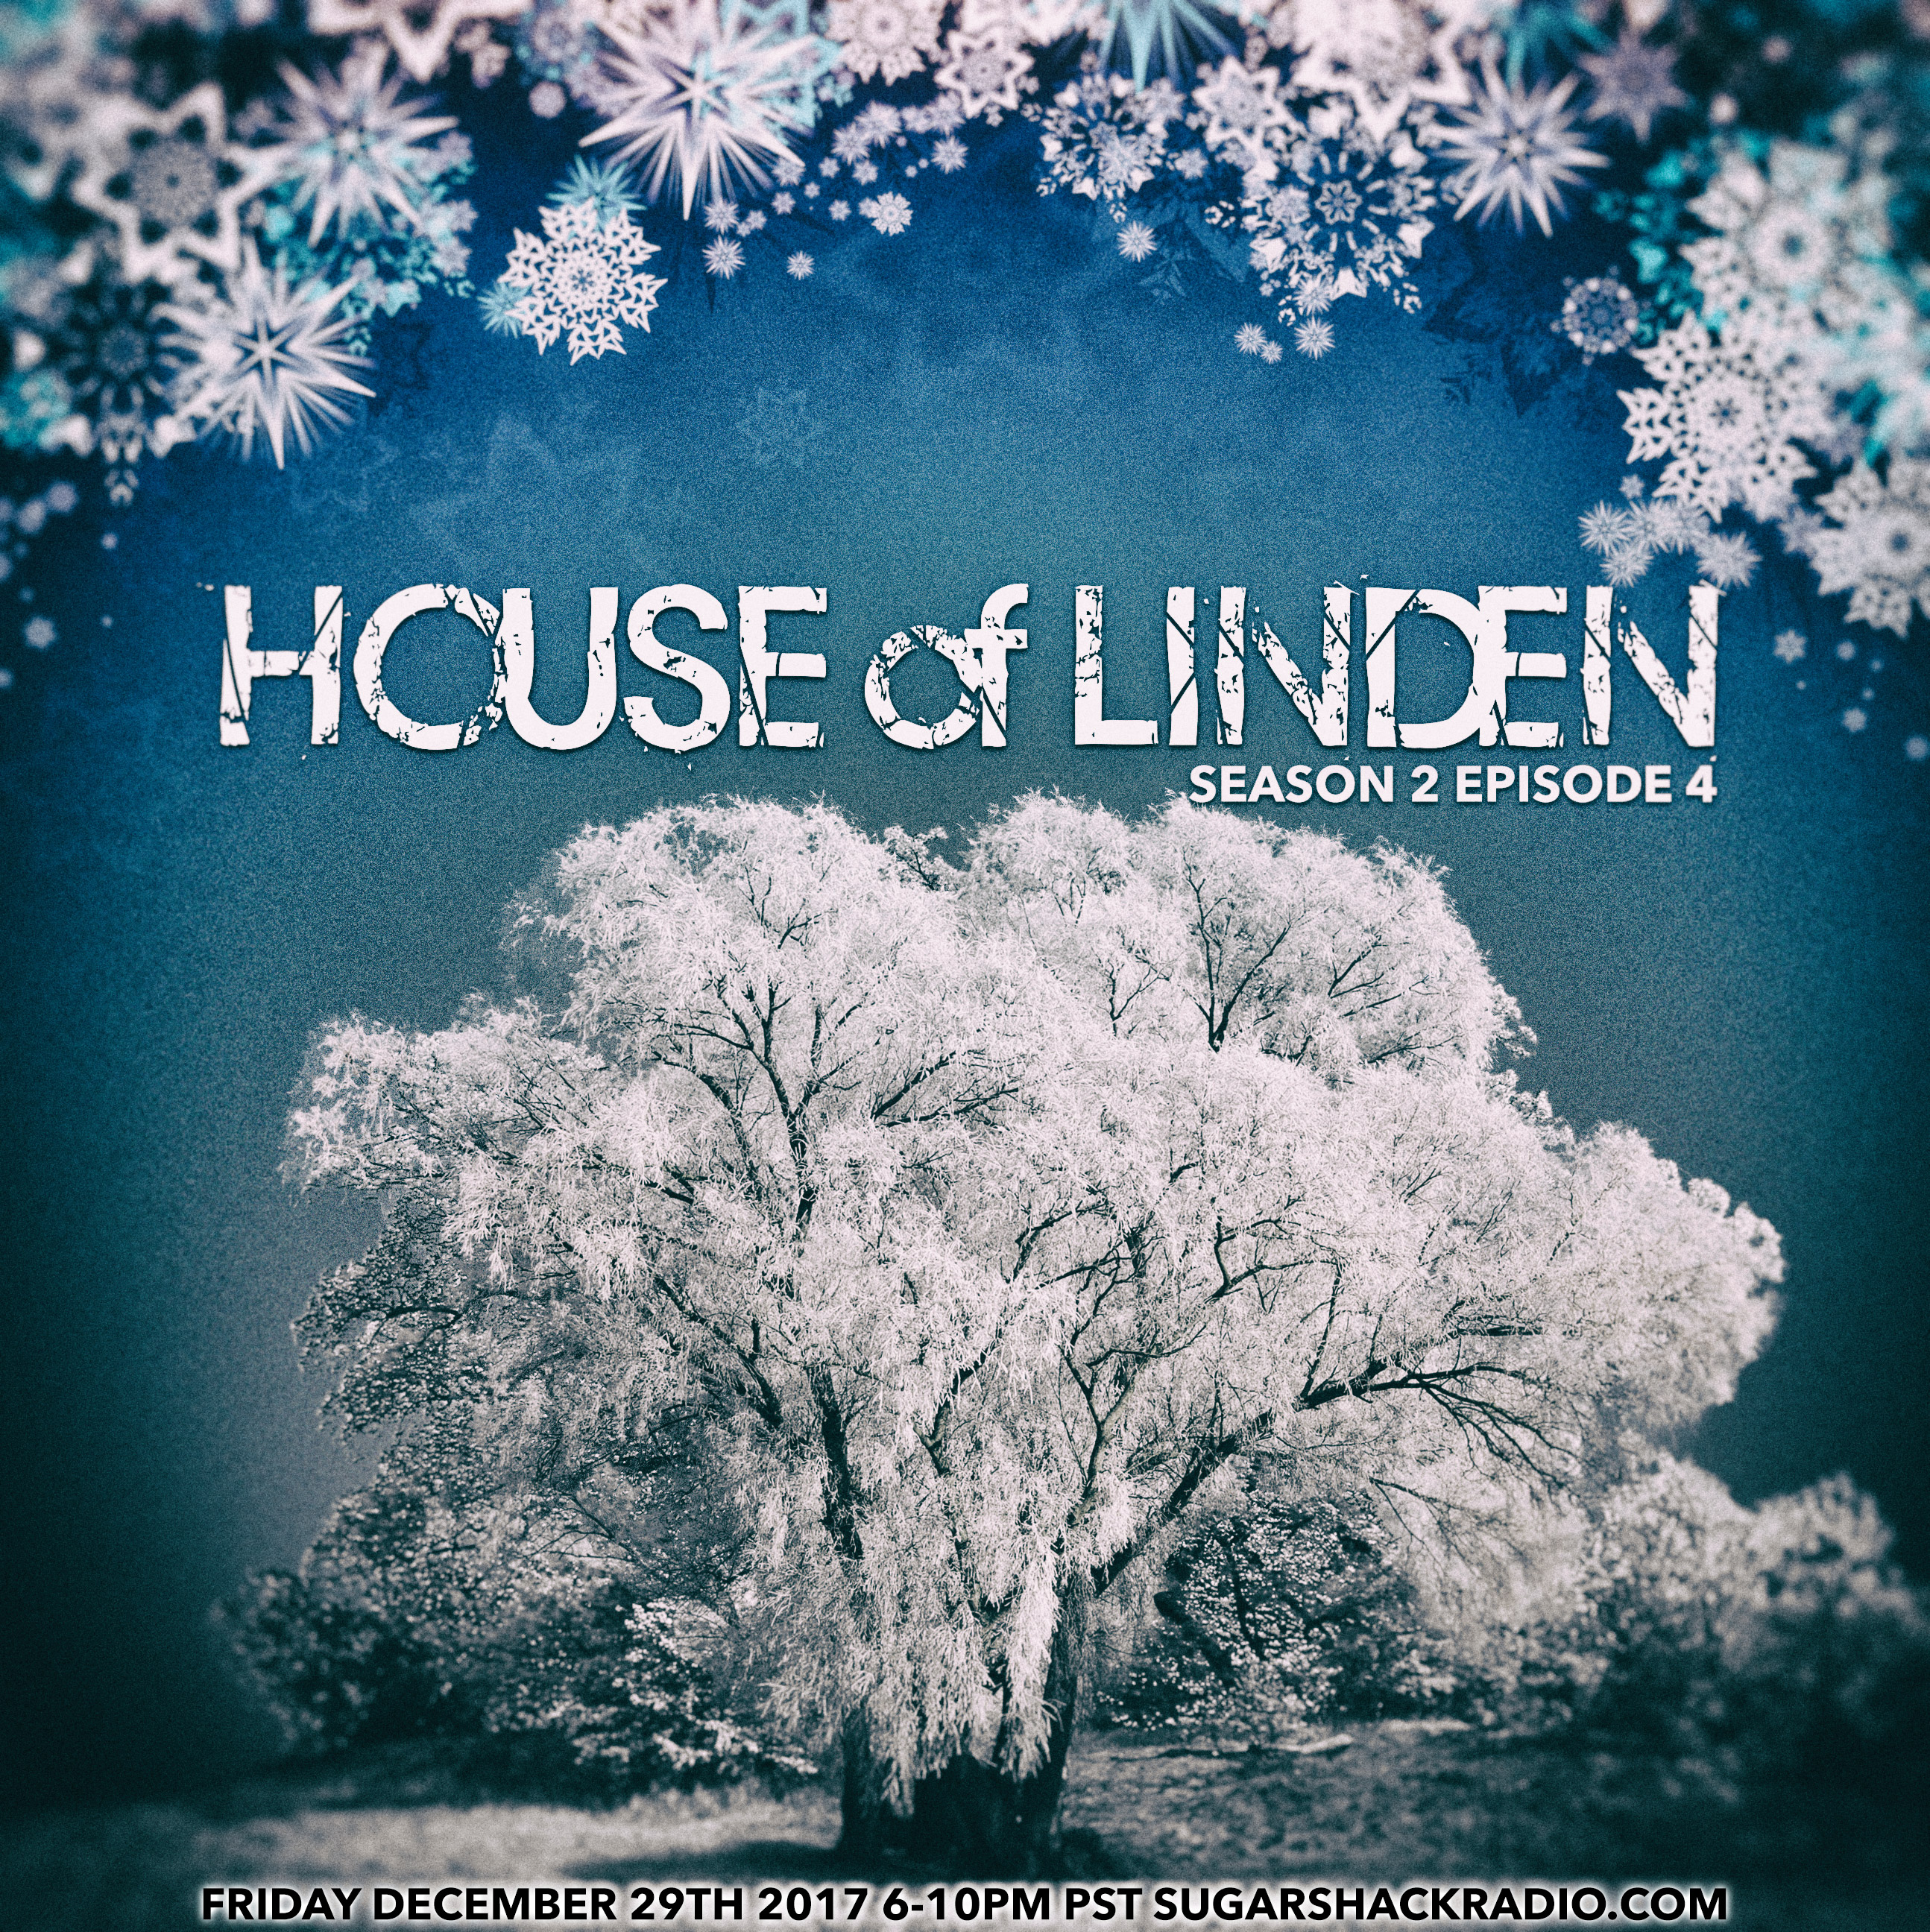 House of Linden